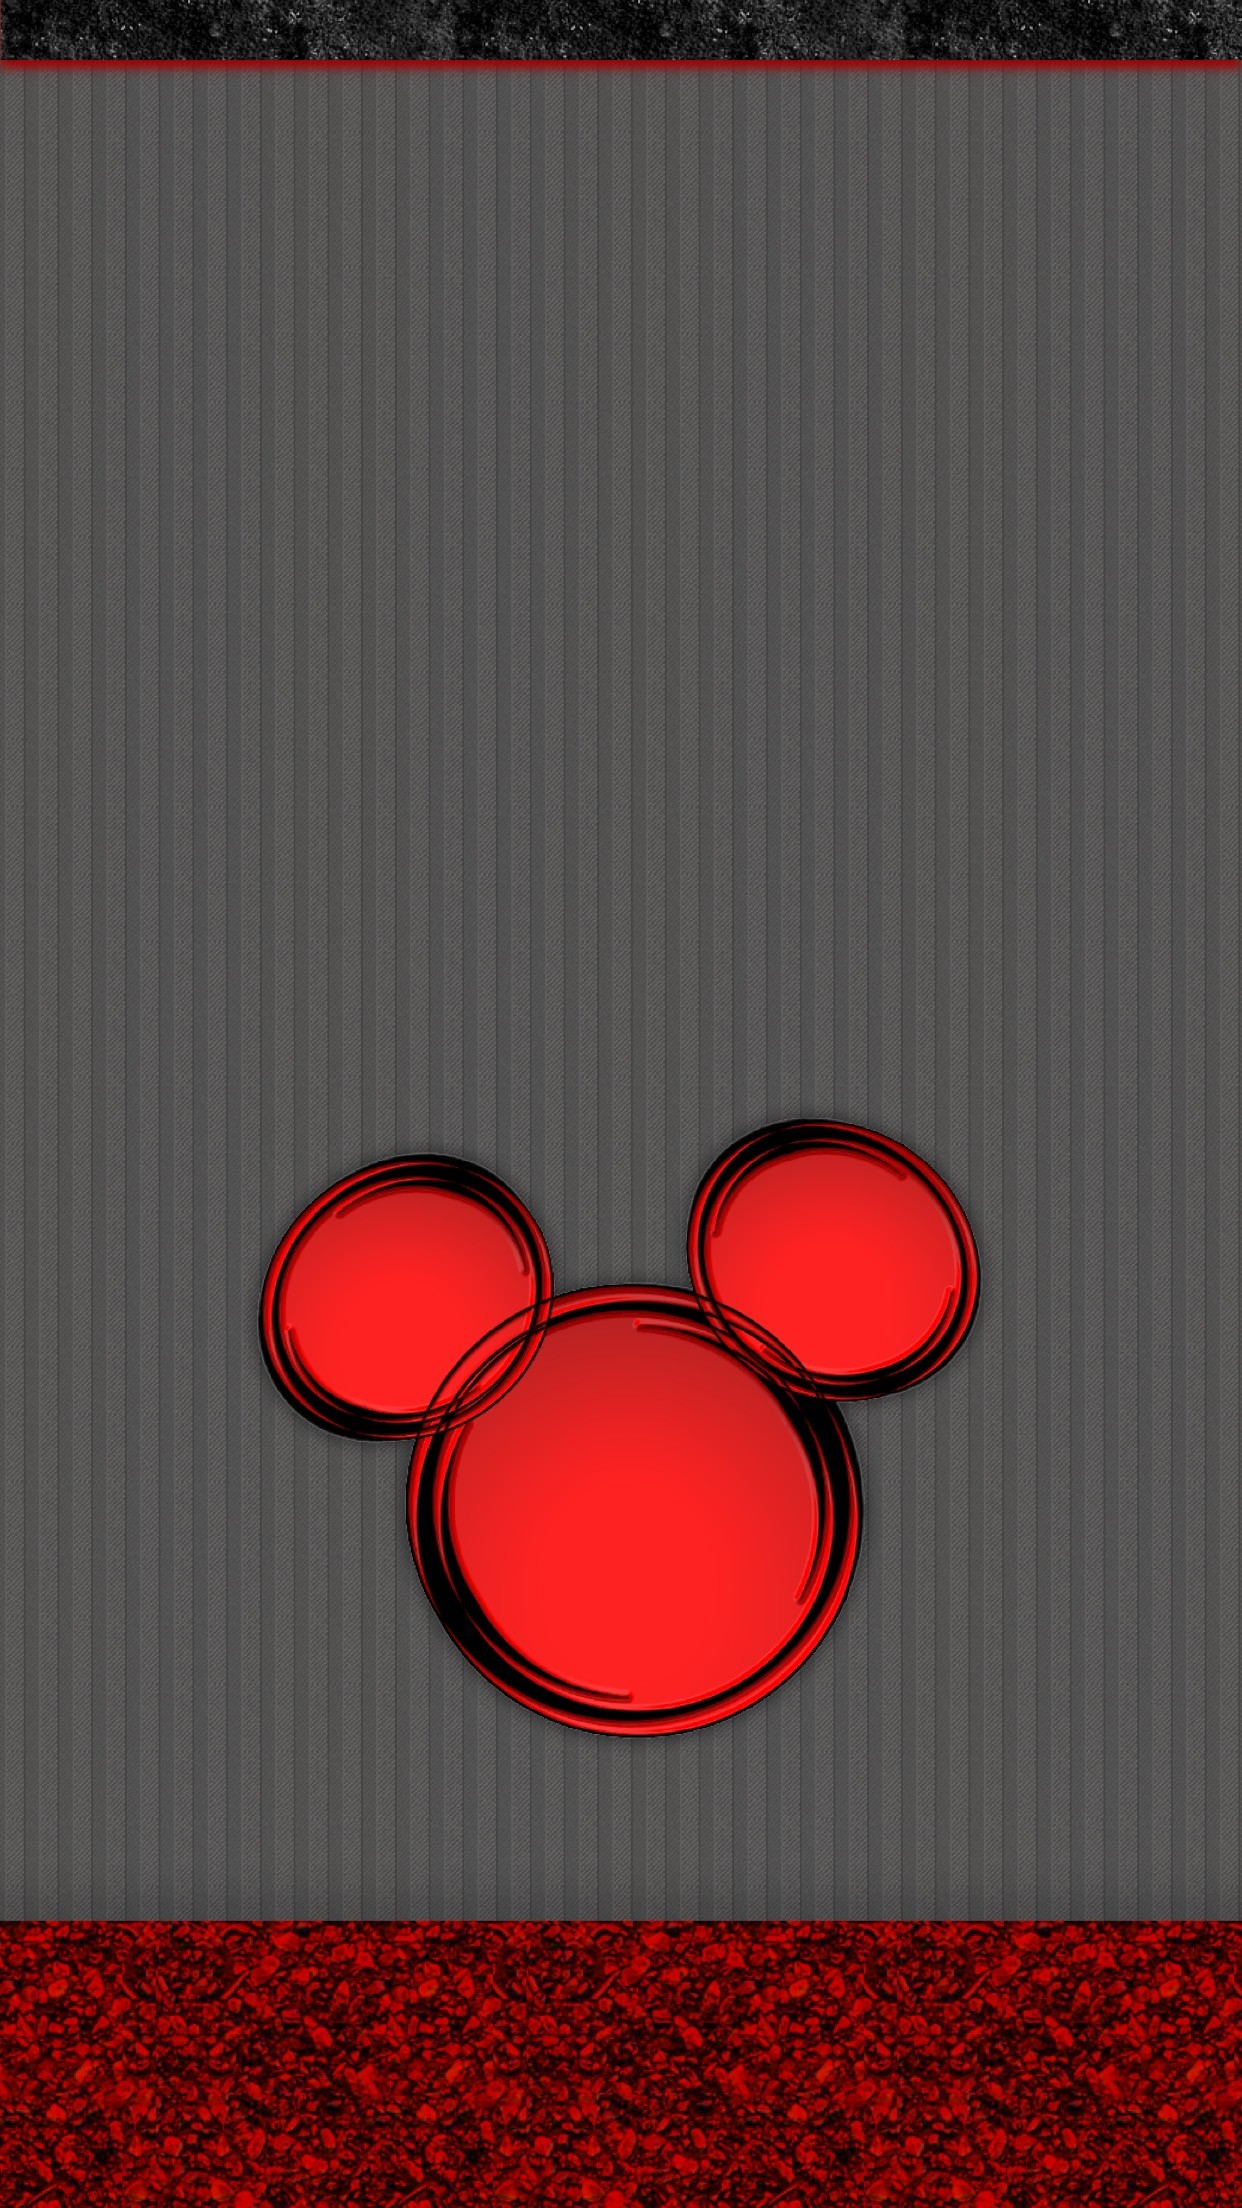 Mickey Minnie Mouse, Iphone Wallpaper, Iphone 6, Dyi, Screens, Several, Wall